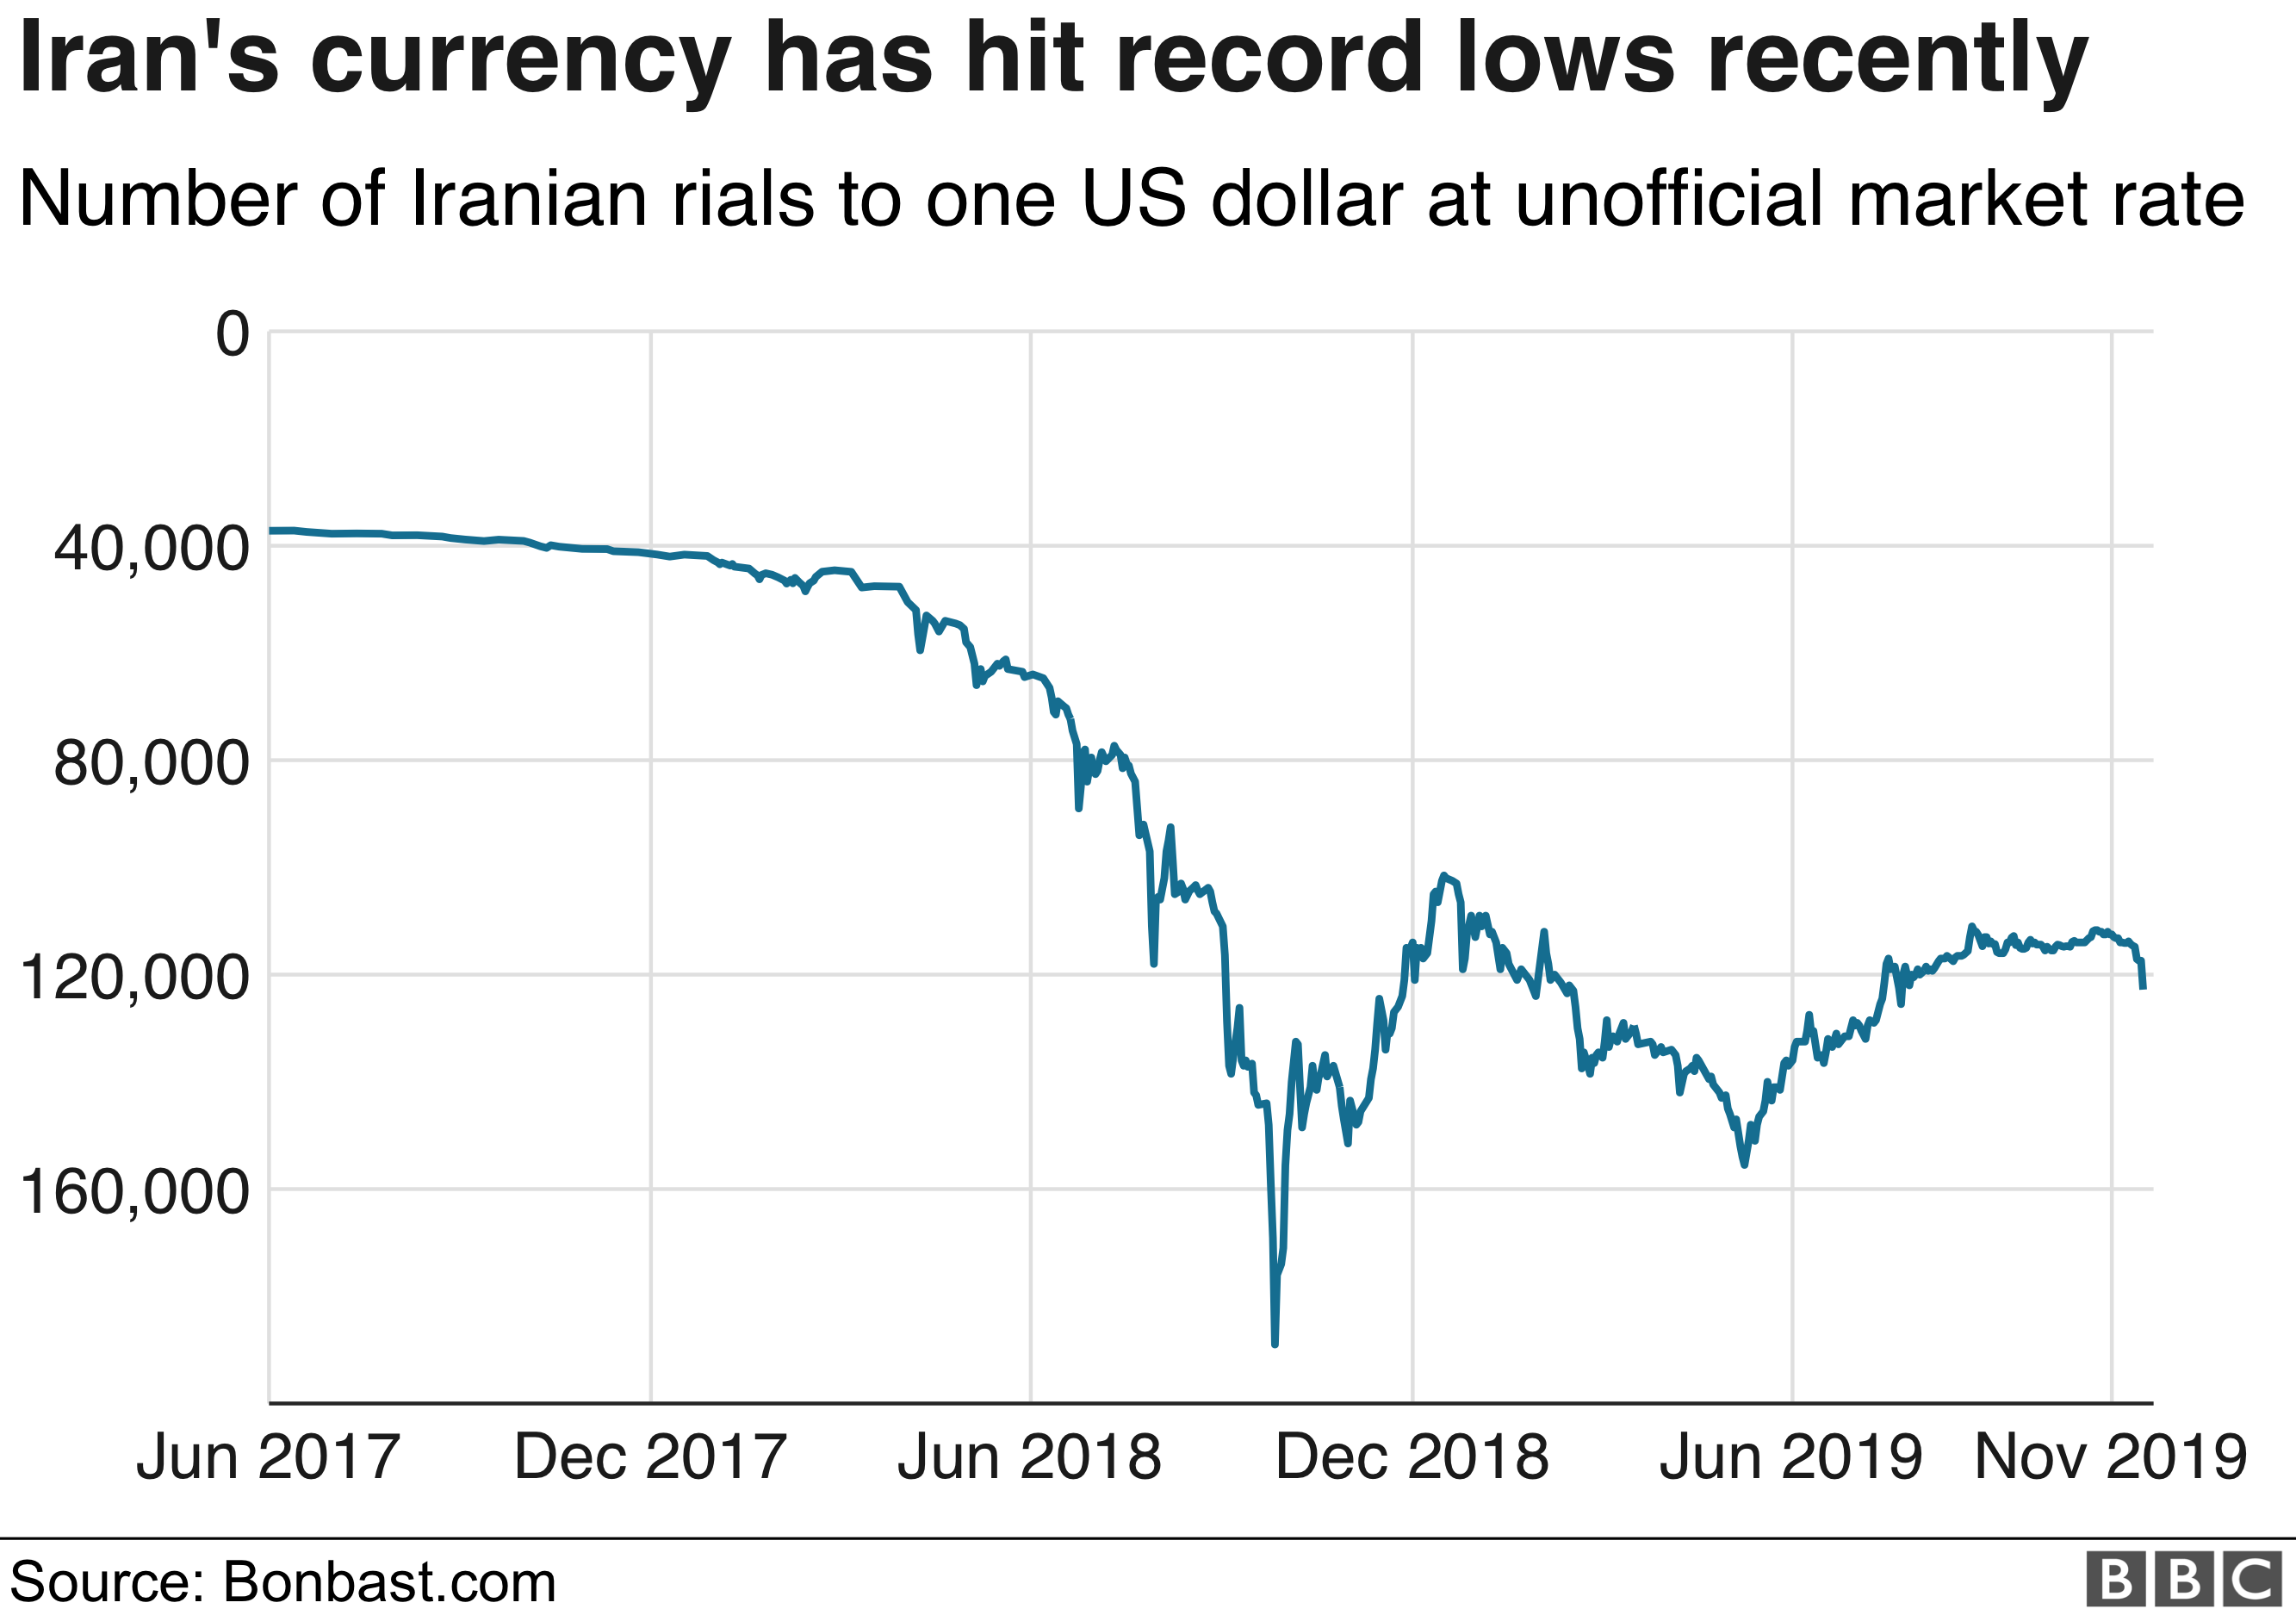 Chart showing value of Iranian rial compared to US dollar (November 2019)